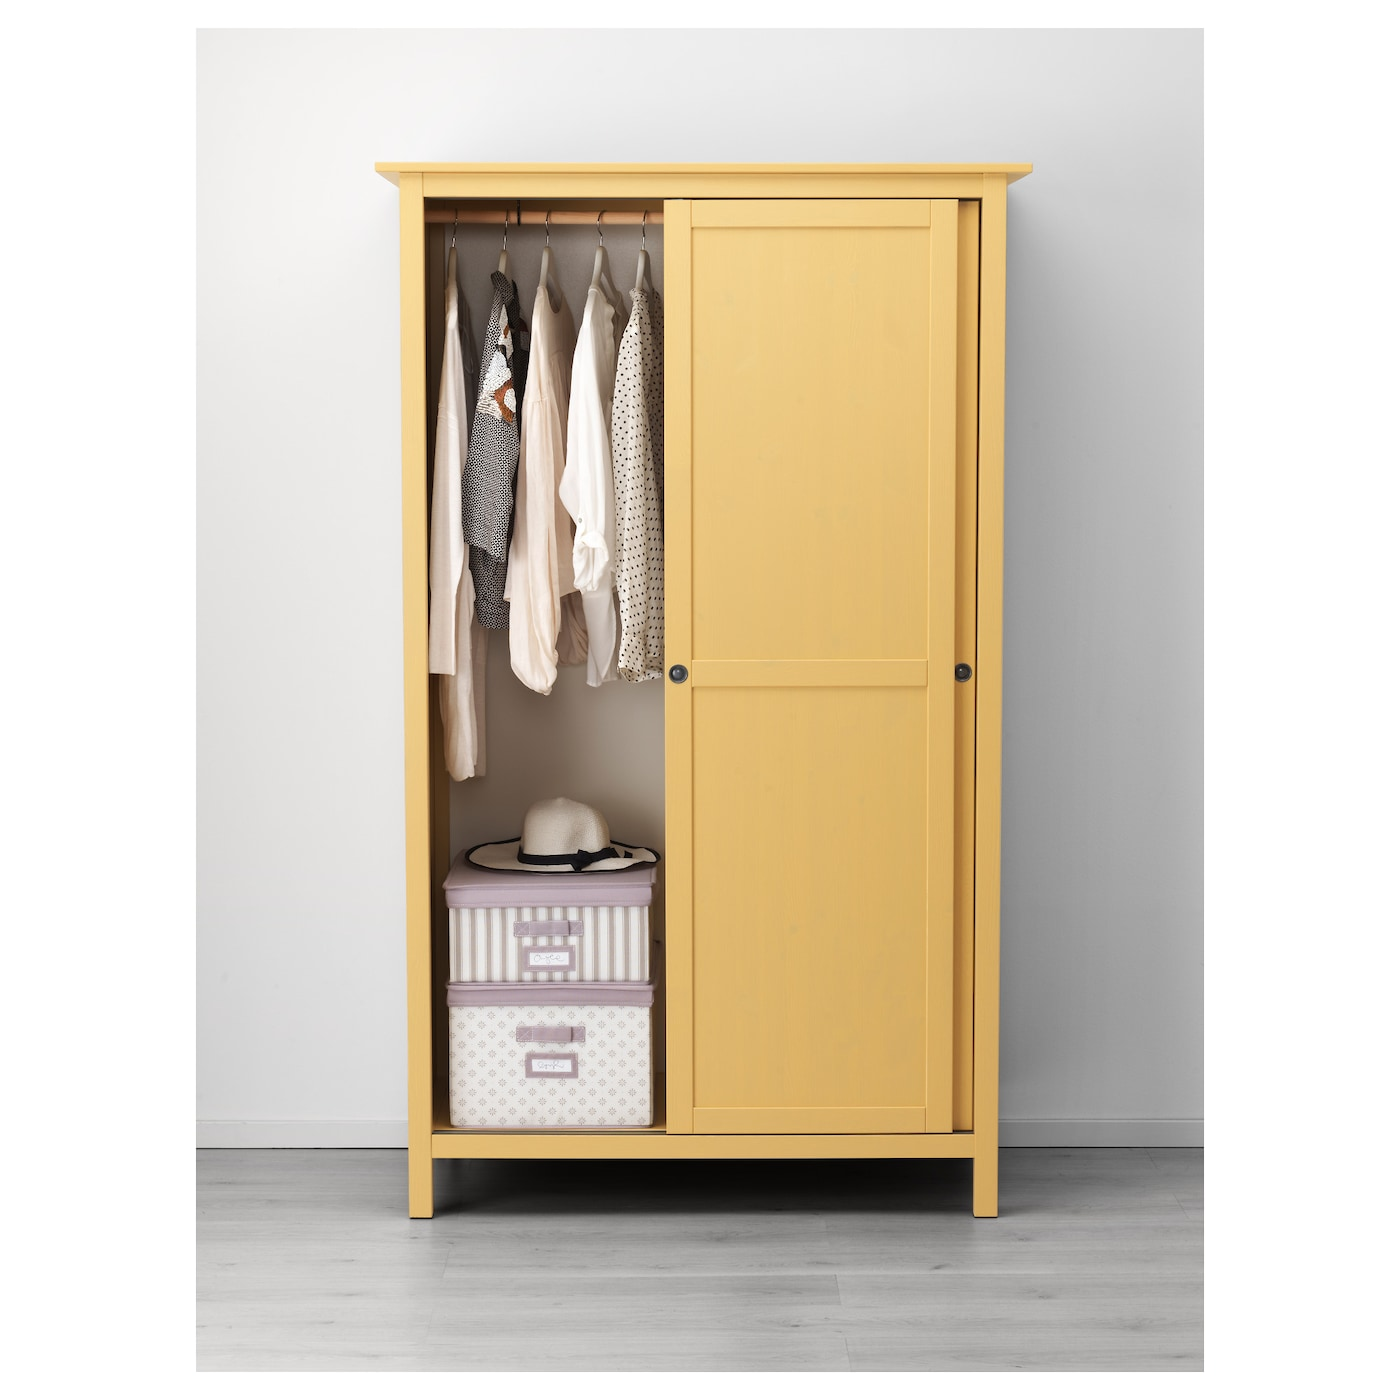 hemnes armoire 2 portes coulissantes jaune 120x197 cm ikea. Black Bedroom Furniture Sets. Home Design Ideas